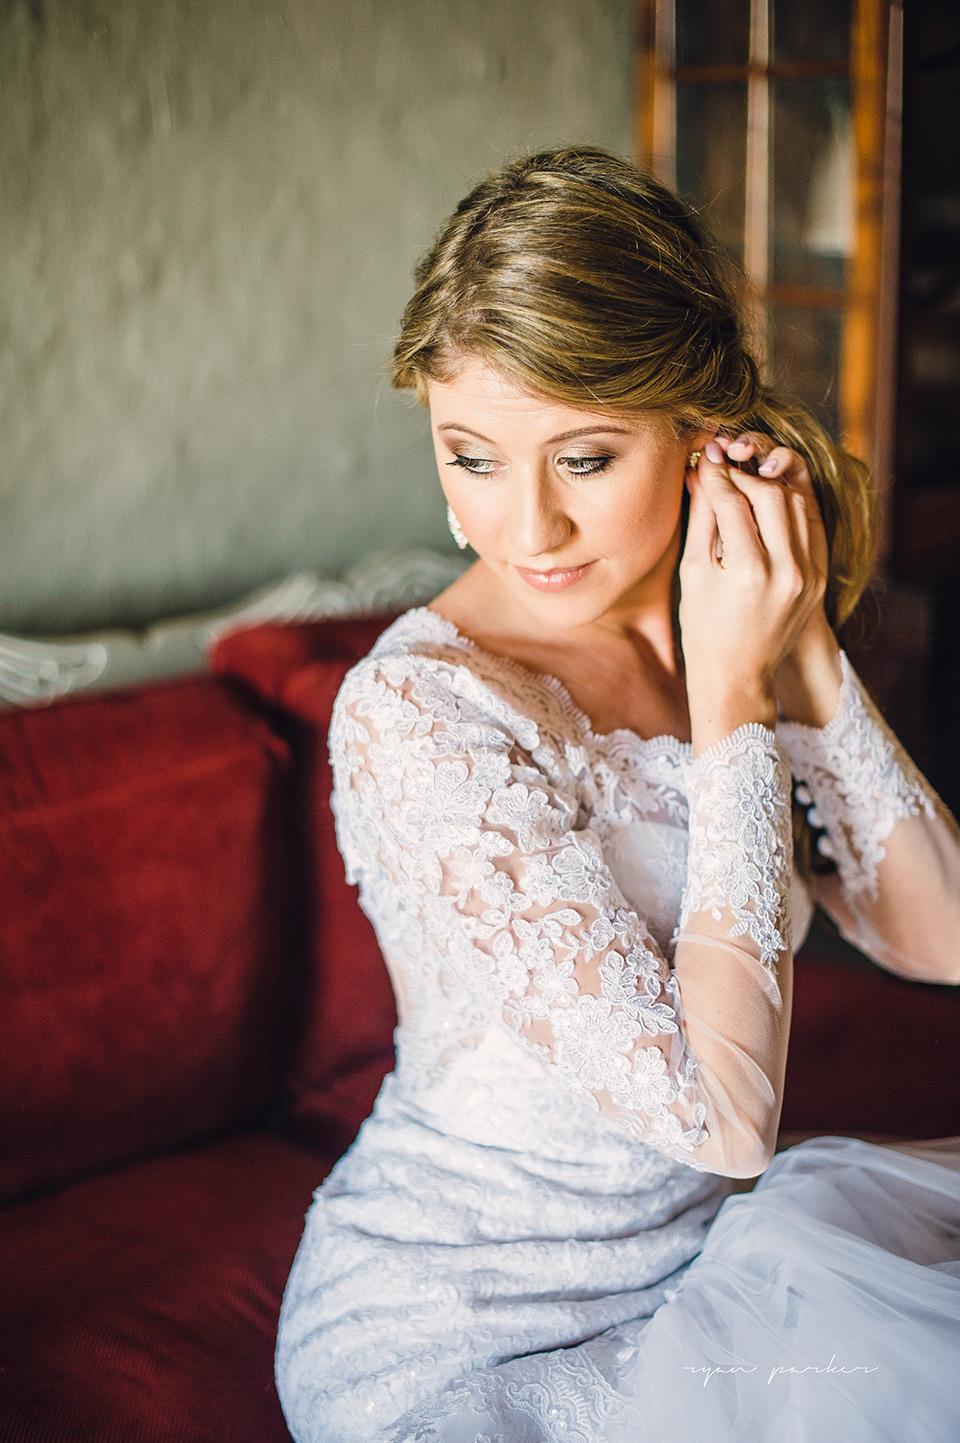 RYAN PARKER_FINE ART WEDDING PHOTOGRAPHER_WEDDING_FLORENCE GUEST FARM_M&S-7698.jpg